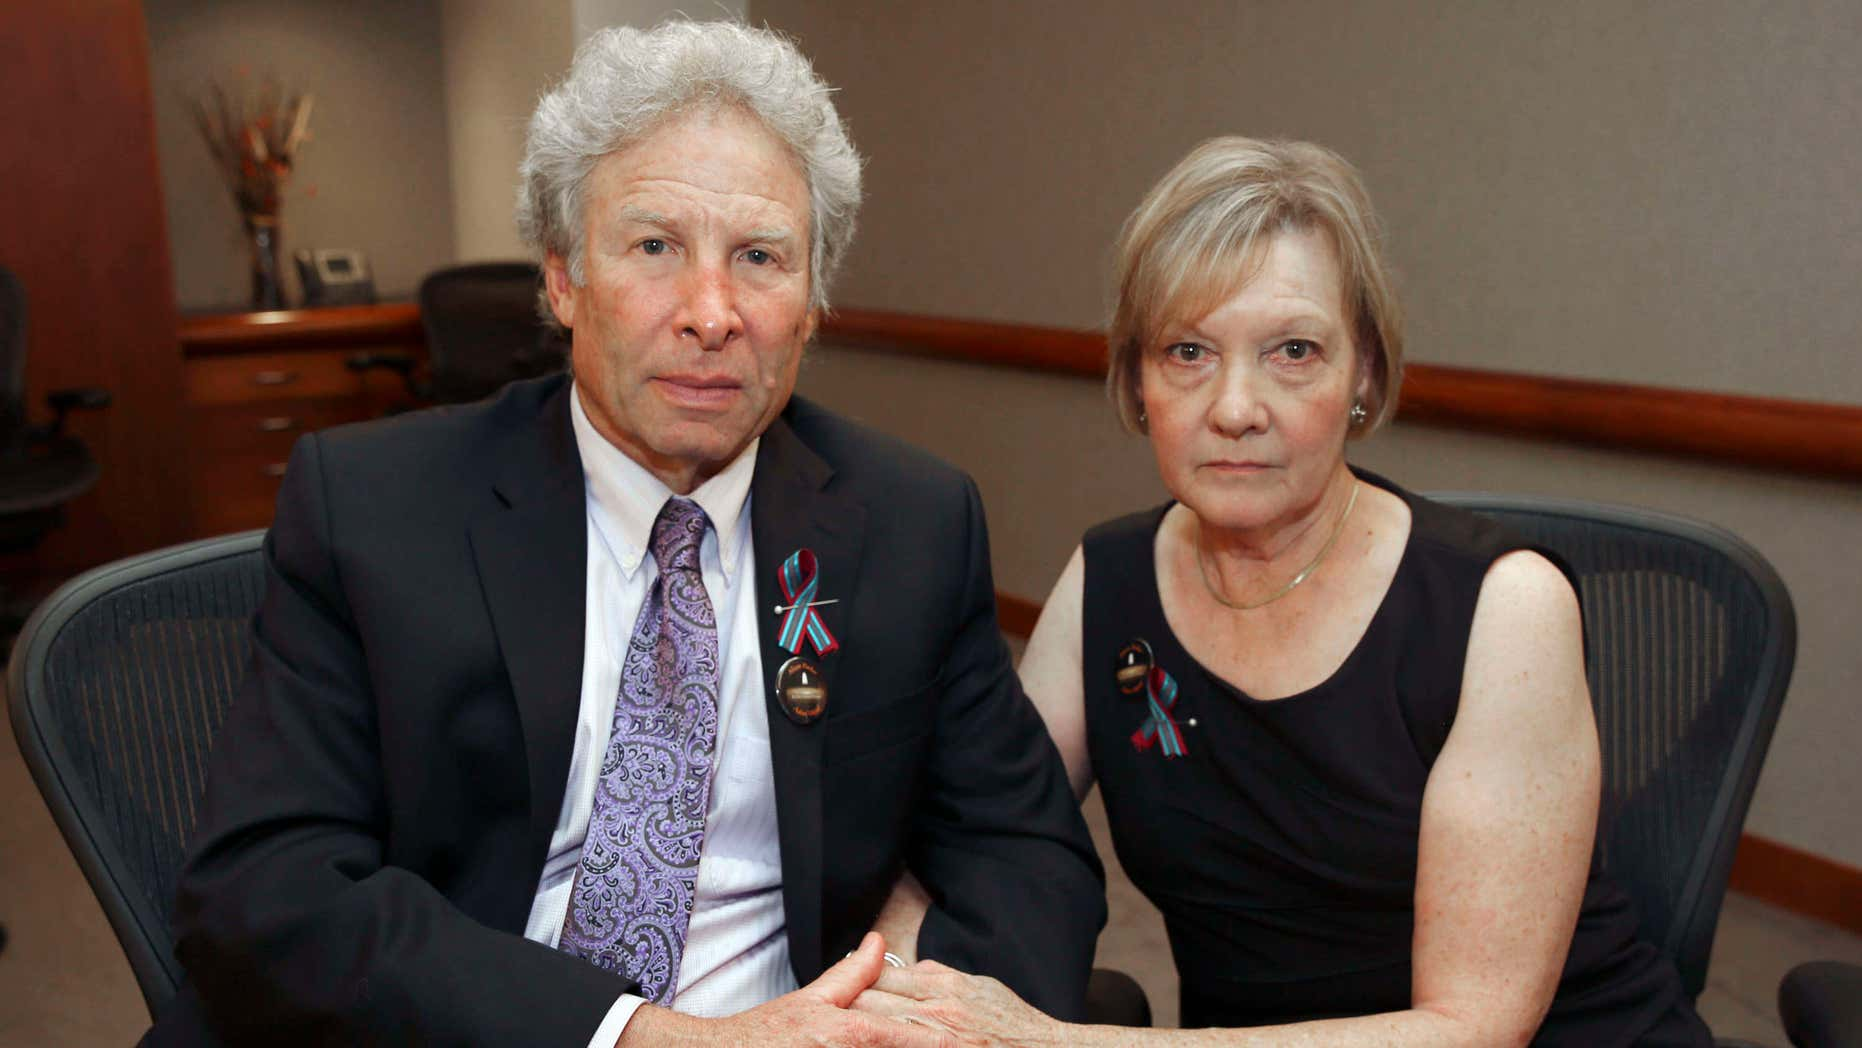 Aug. 28, 2015: Andy and Barbara Parker, of Collinsville, Va. mourn the loss of their daughter, Alison Parker, a journalist for WDBJ.